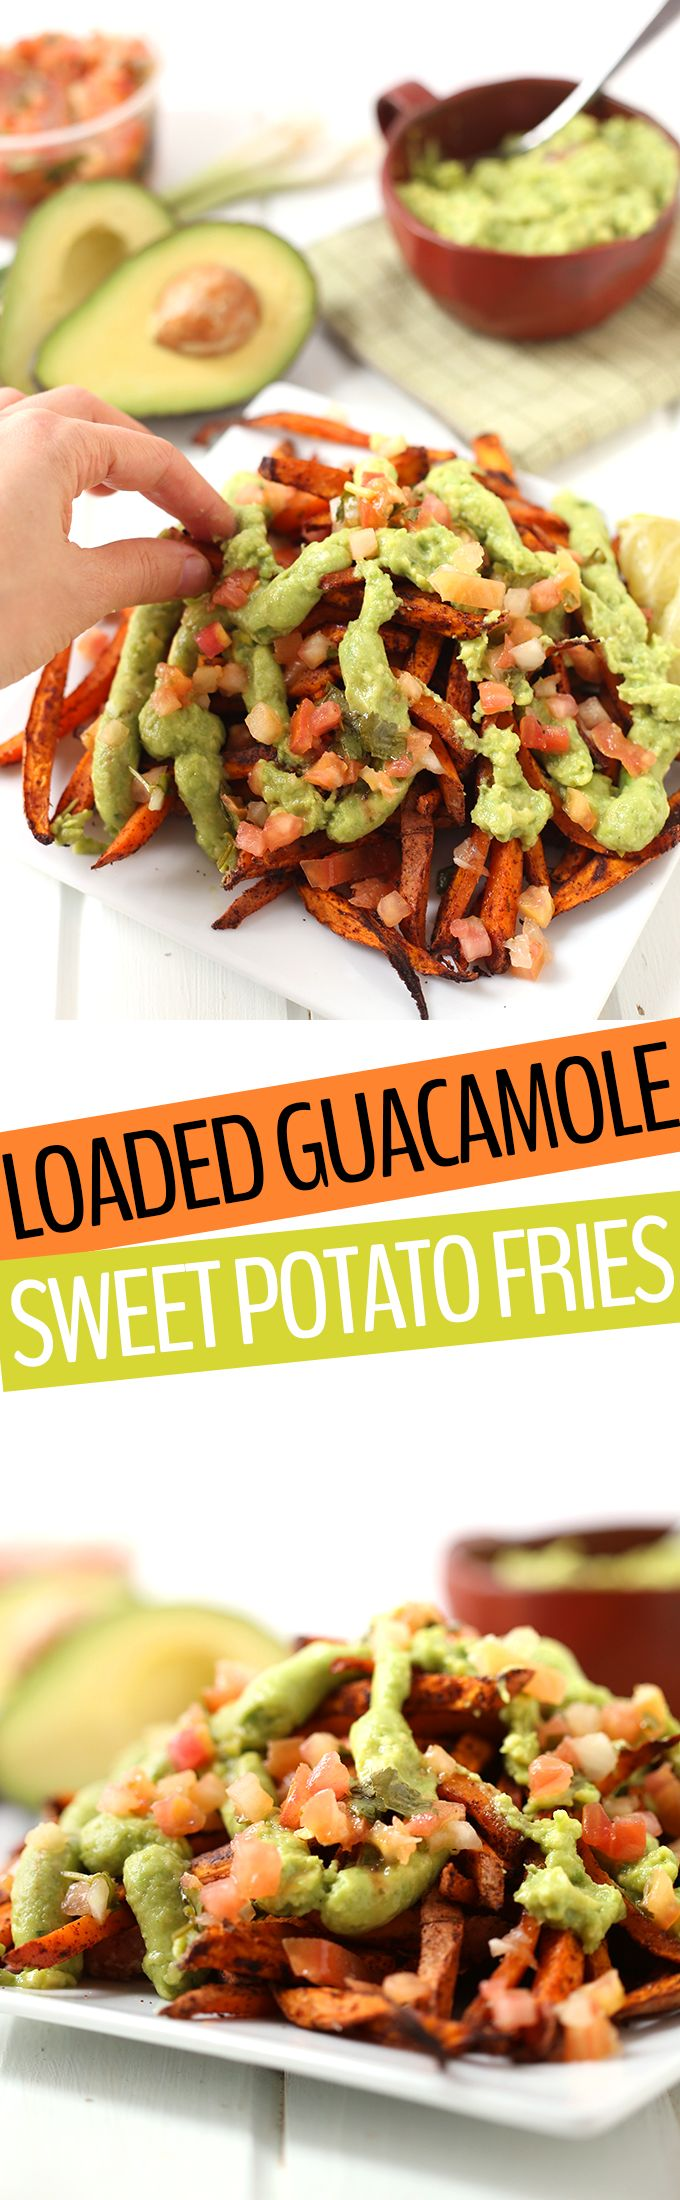 Change it up next game day with these Loaded Guacamole Sweet Potato Fries. Mexican meets healthy in this vibrant and delicious game day or appetizer recipe! You'll never go back to regular ole' sweet potato fries...